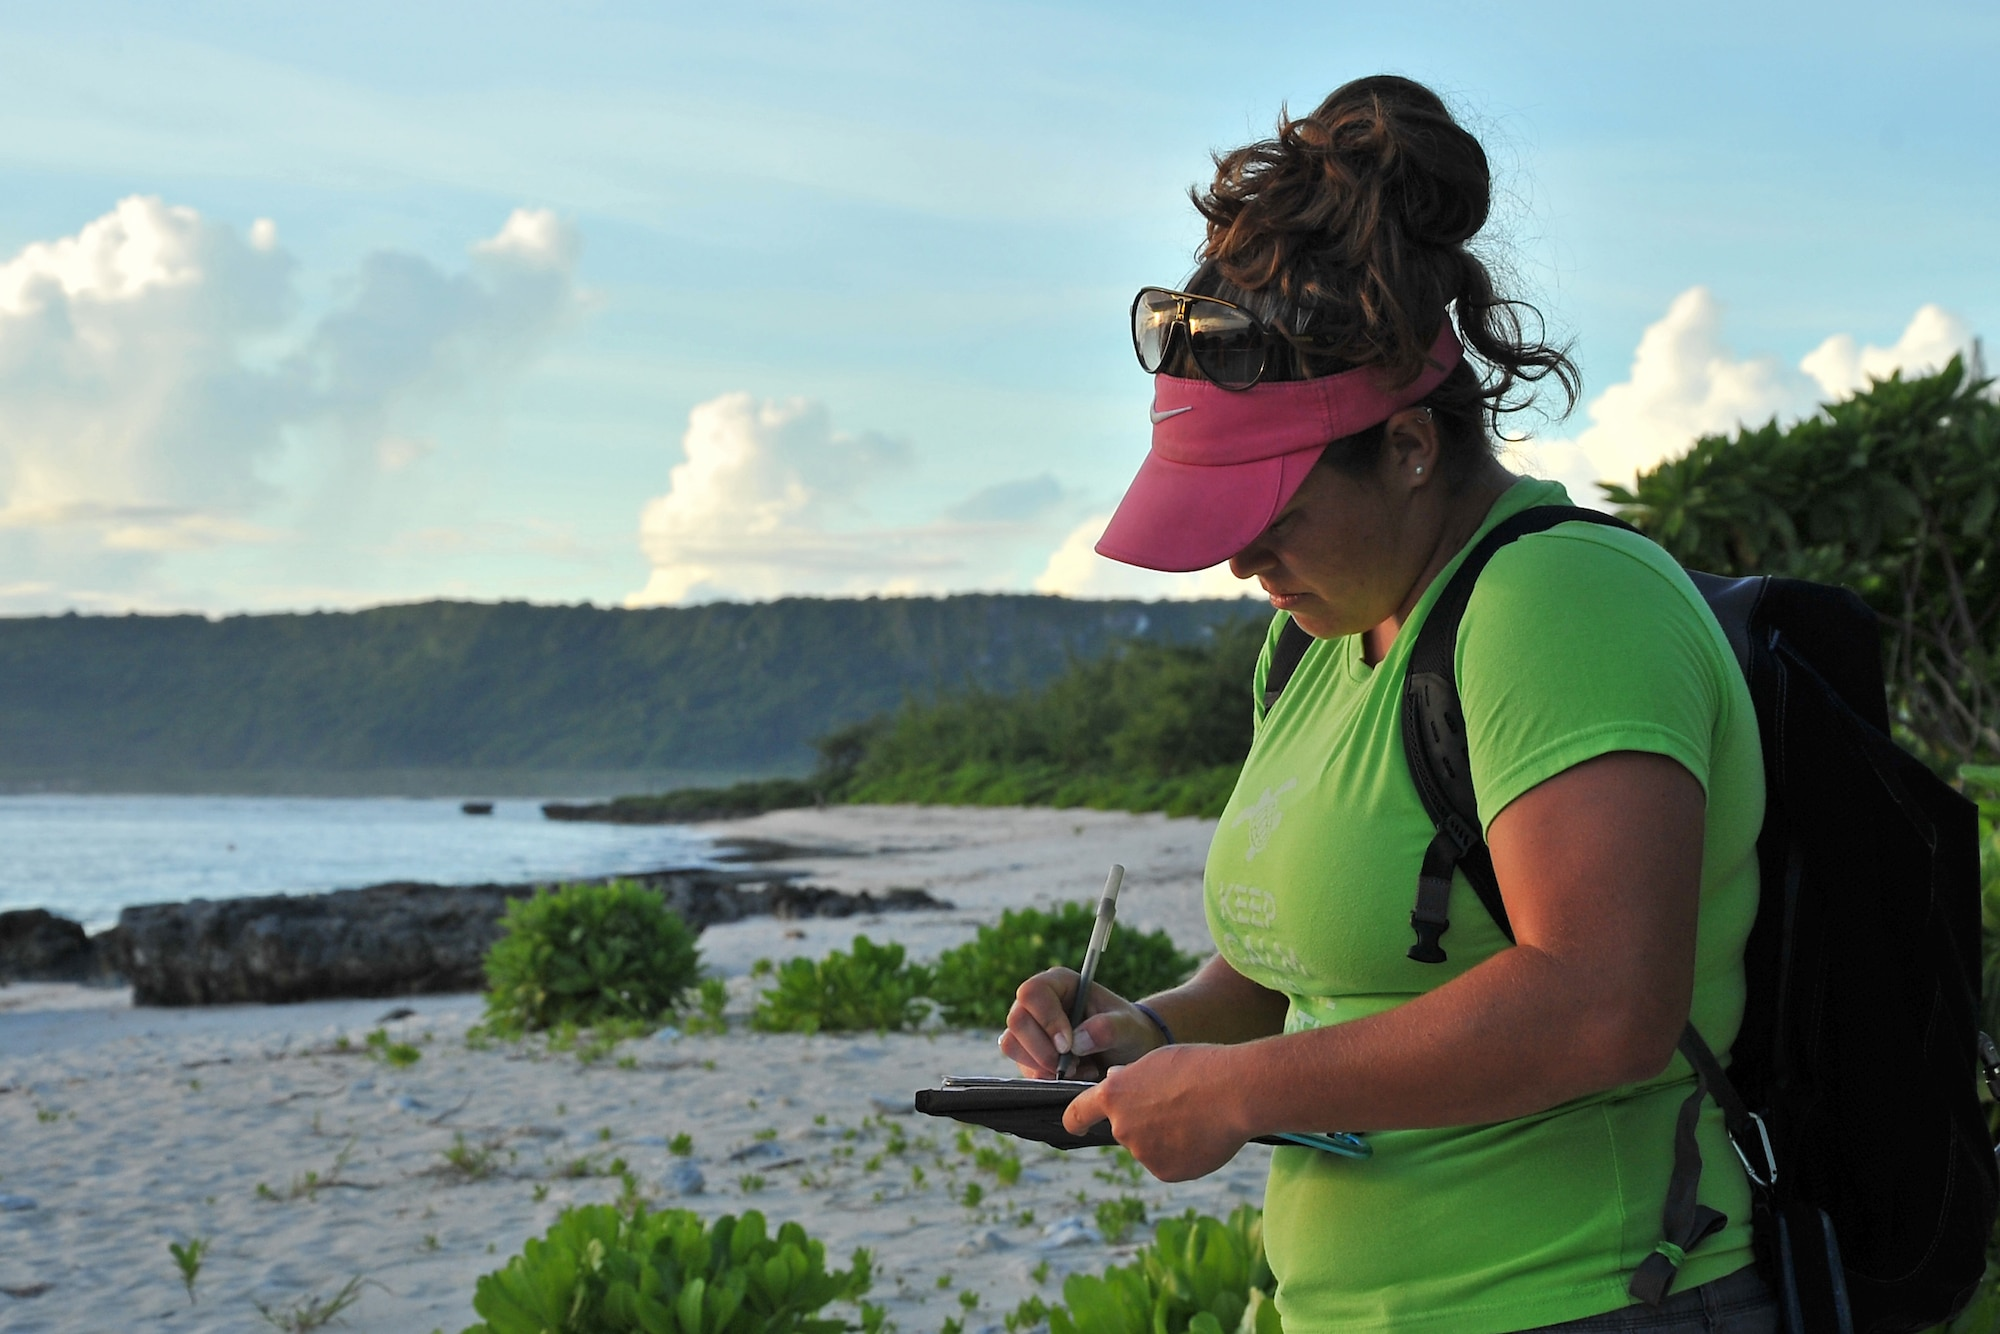 Marylou Staman begins a survey of beaches in the Tarague Basin Aug. 13, 2014, on Andersen Air Force Base, Guam. Staman and a scientific research team have monitored 14 nests in the basin since they started the surveys in March 2014 and have recorded a total of 984 hatchlings thus far. Staman is a University of Guam Sea Turtle Monitoring, Protection and Educational Outreach on Guam project manager. (U.S. Air Force photo/Staff Sgt. Melissa B. White)